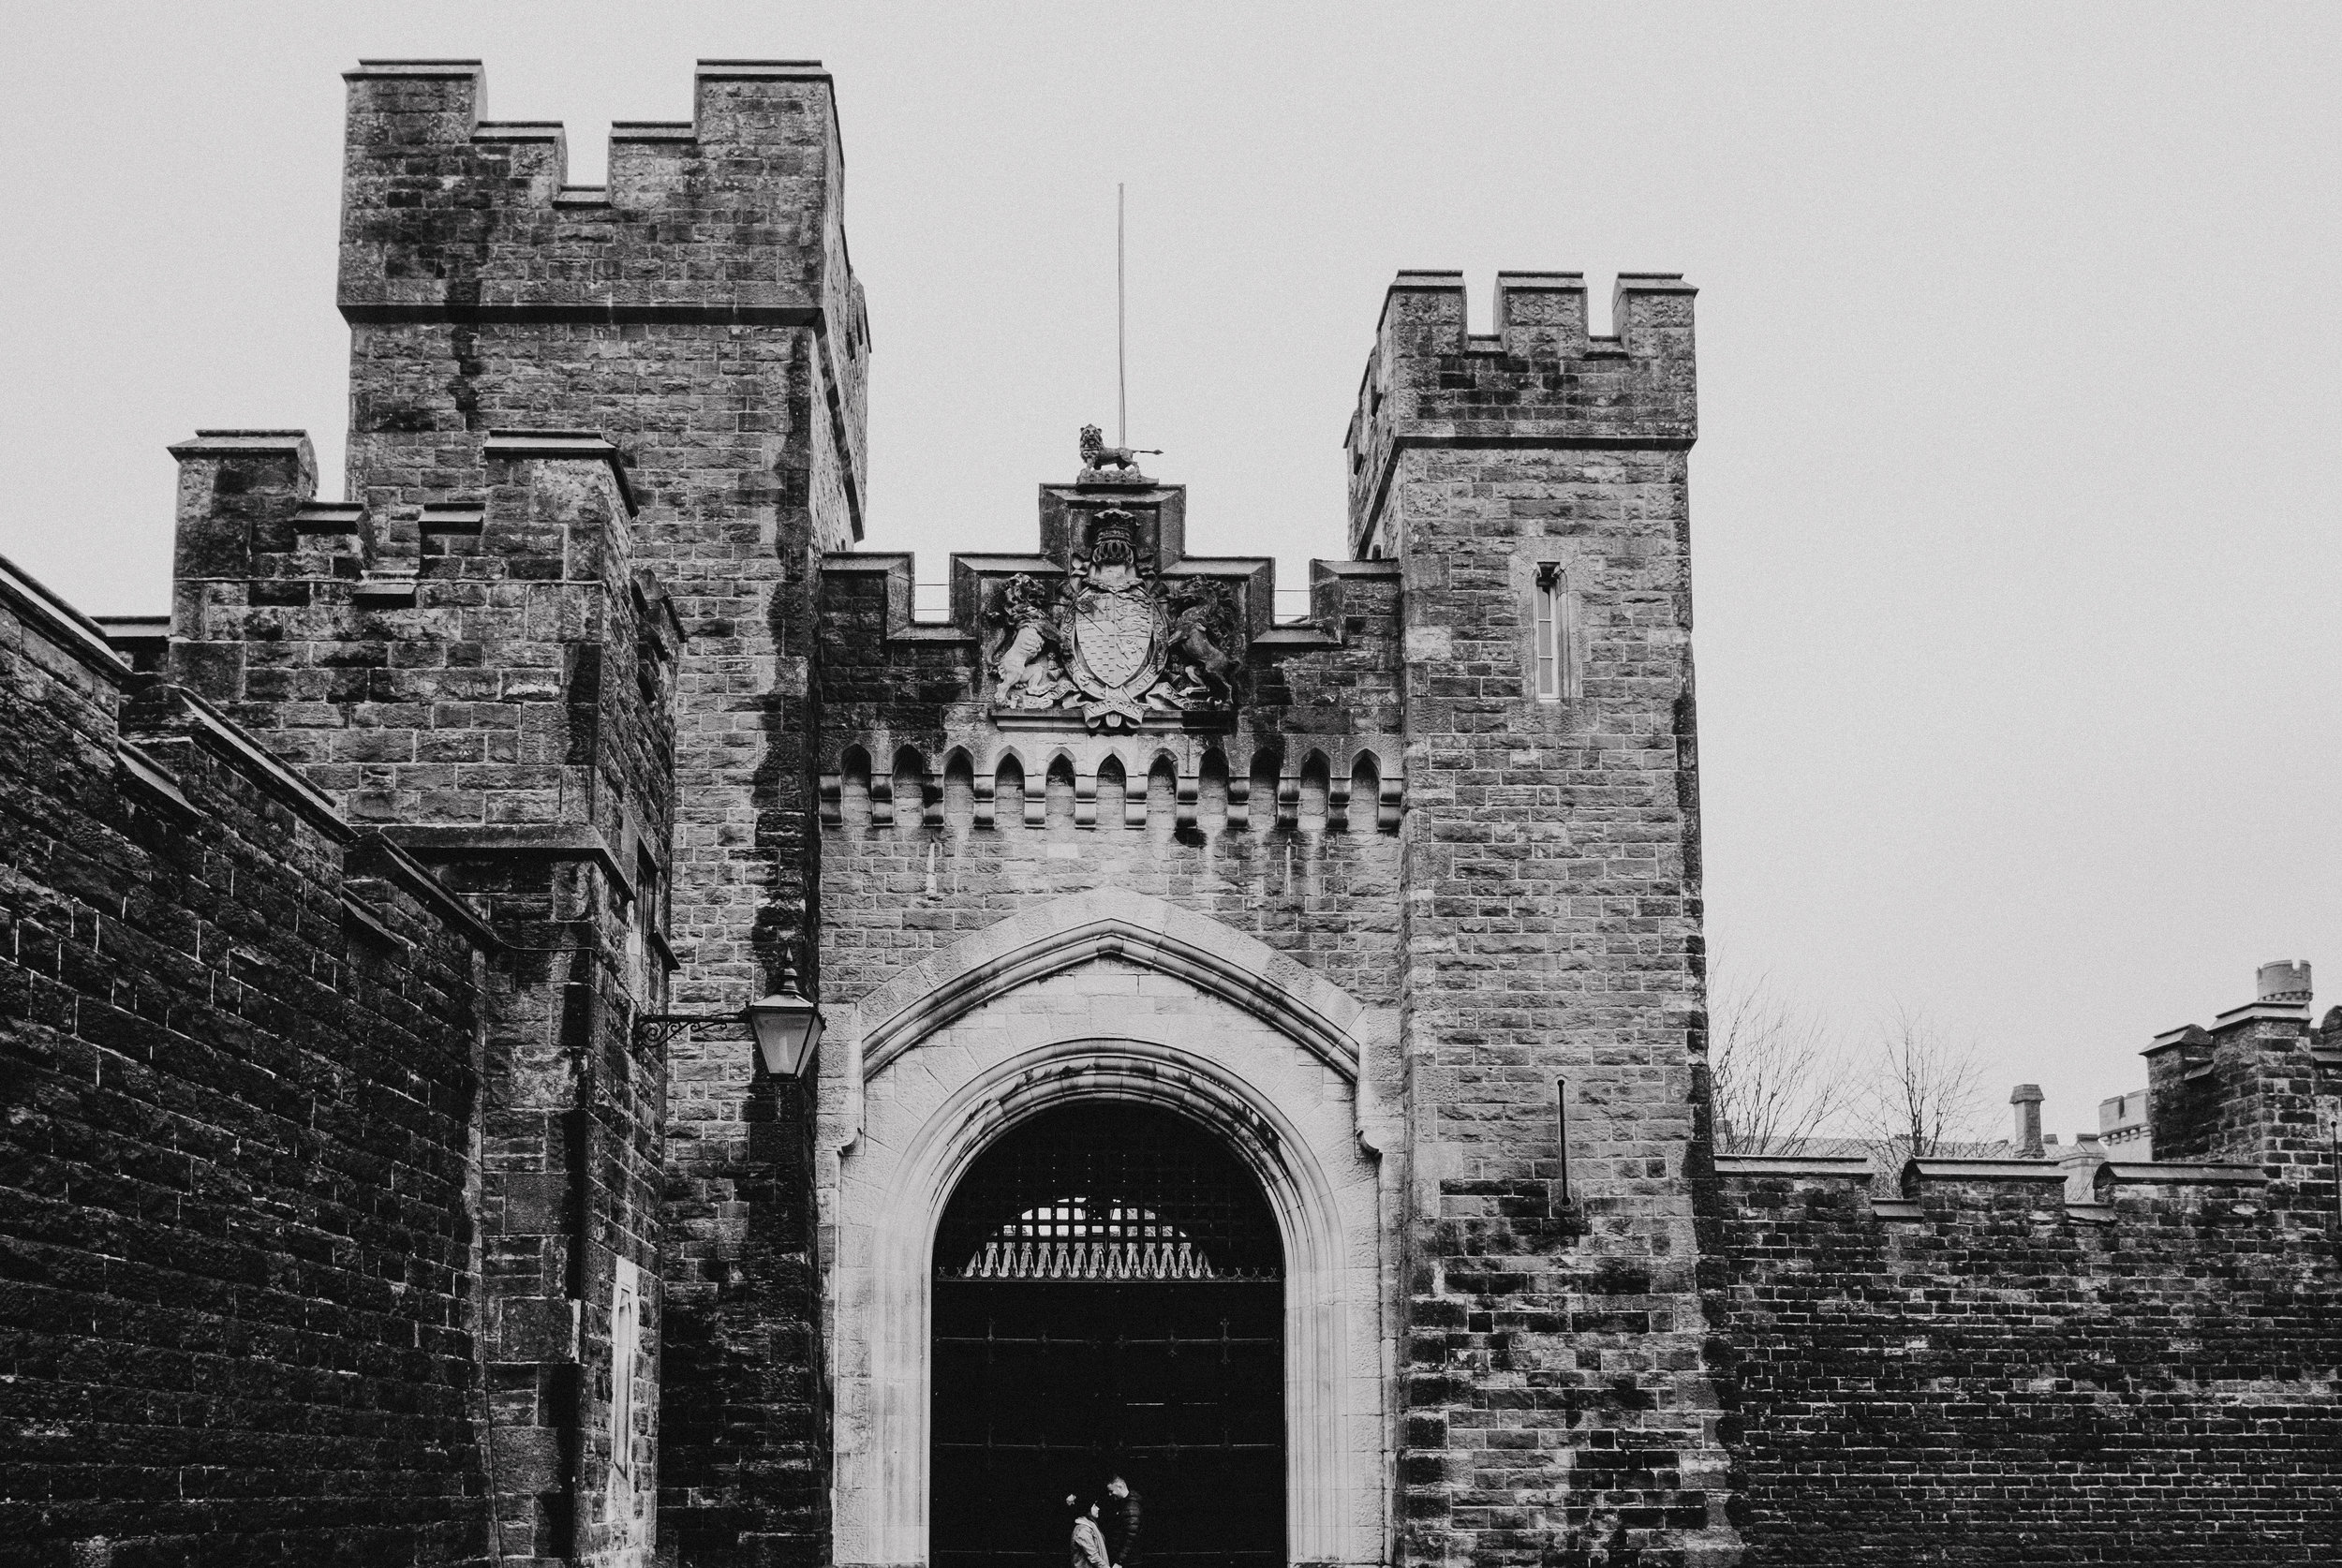 Arundel castle engagement shoot